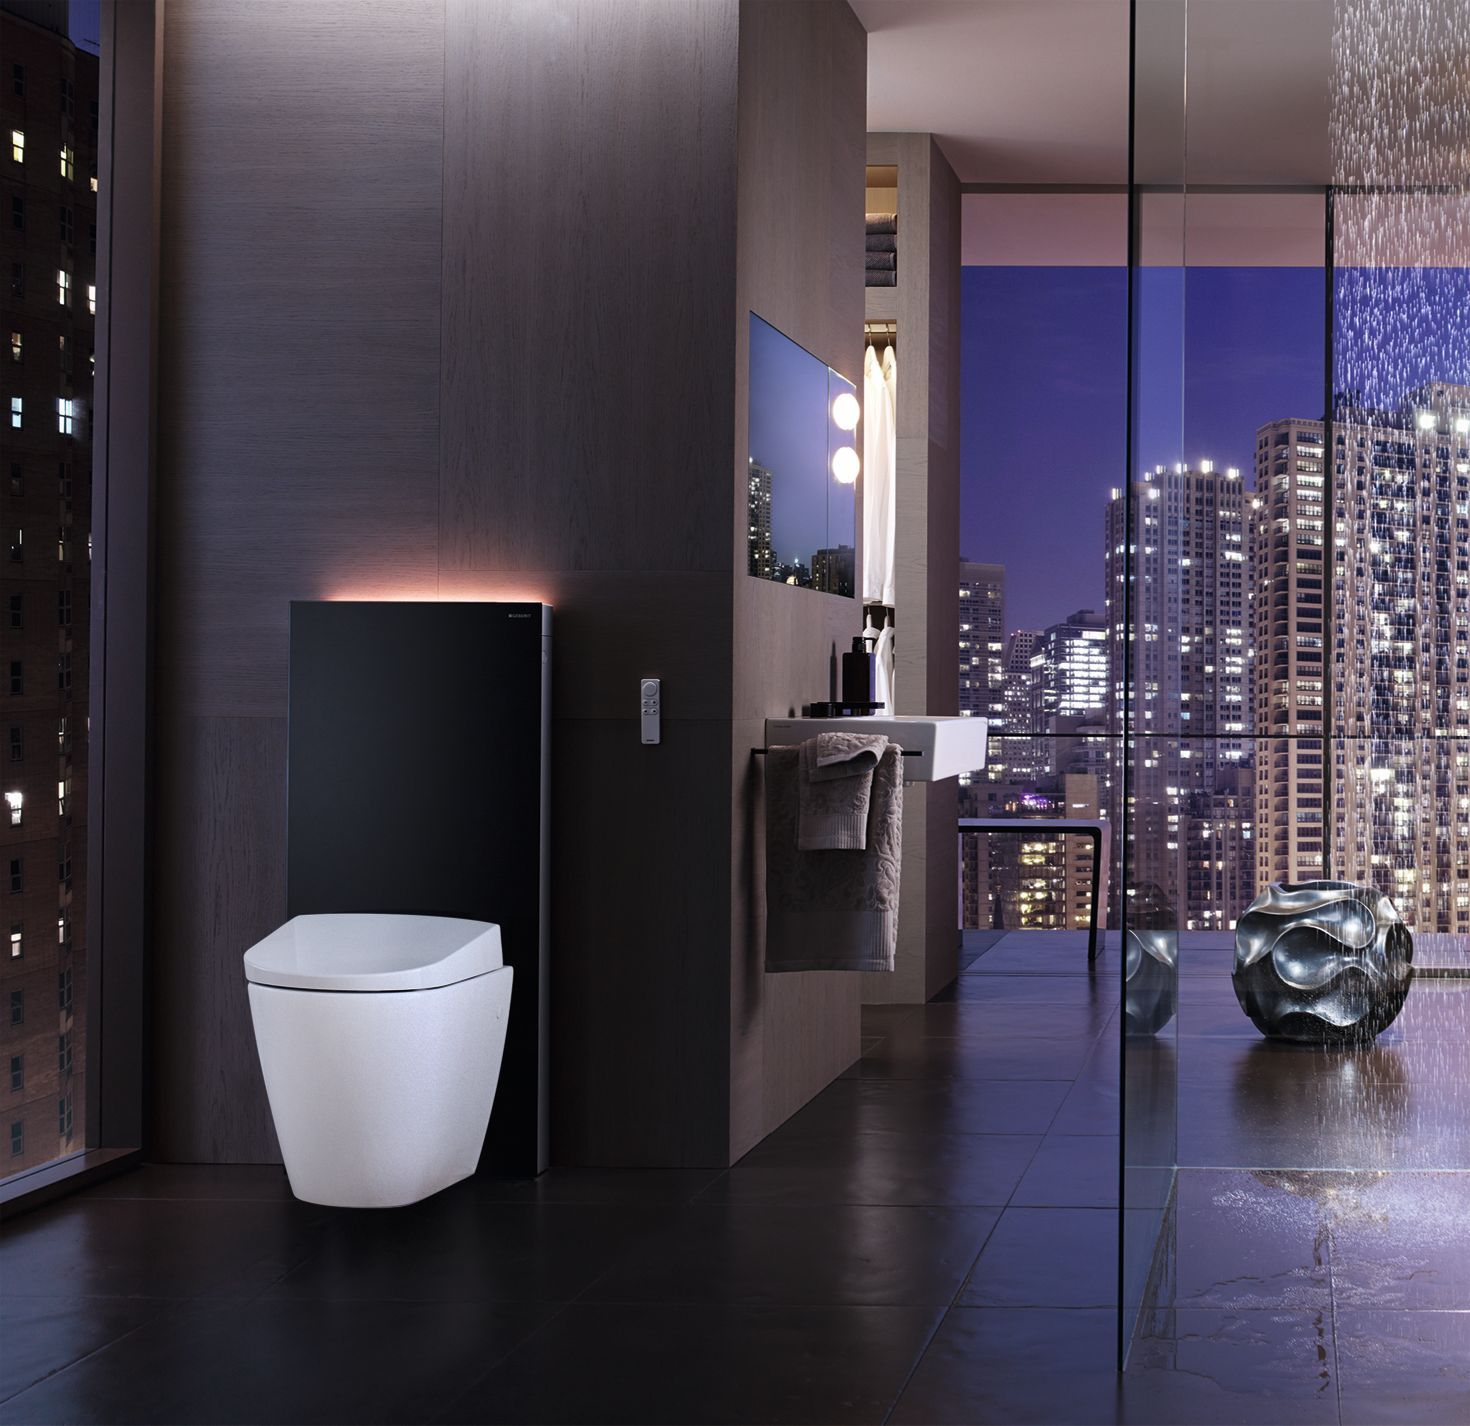 Showertoilet Geberit Aquaclean Sela With Geberit Monolith Have A Look At The Orientation Light Diseno De Banos Modernos Diseno De Banos Banos De Lujo